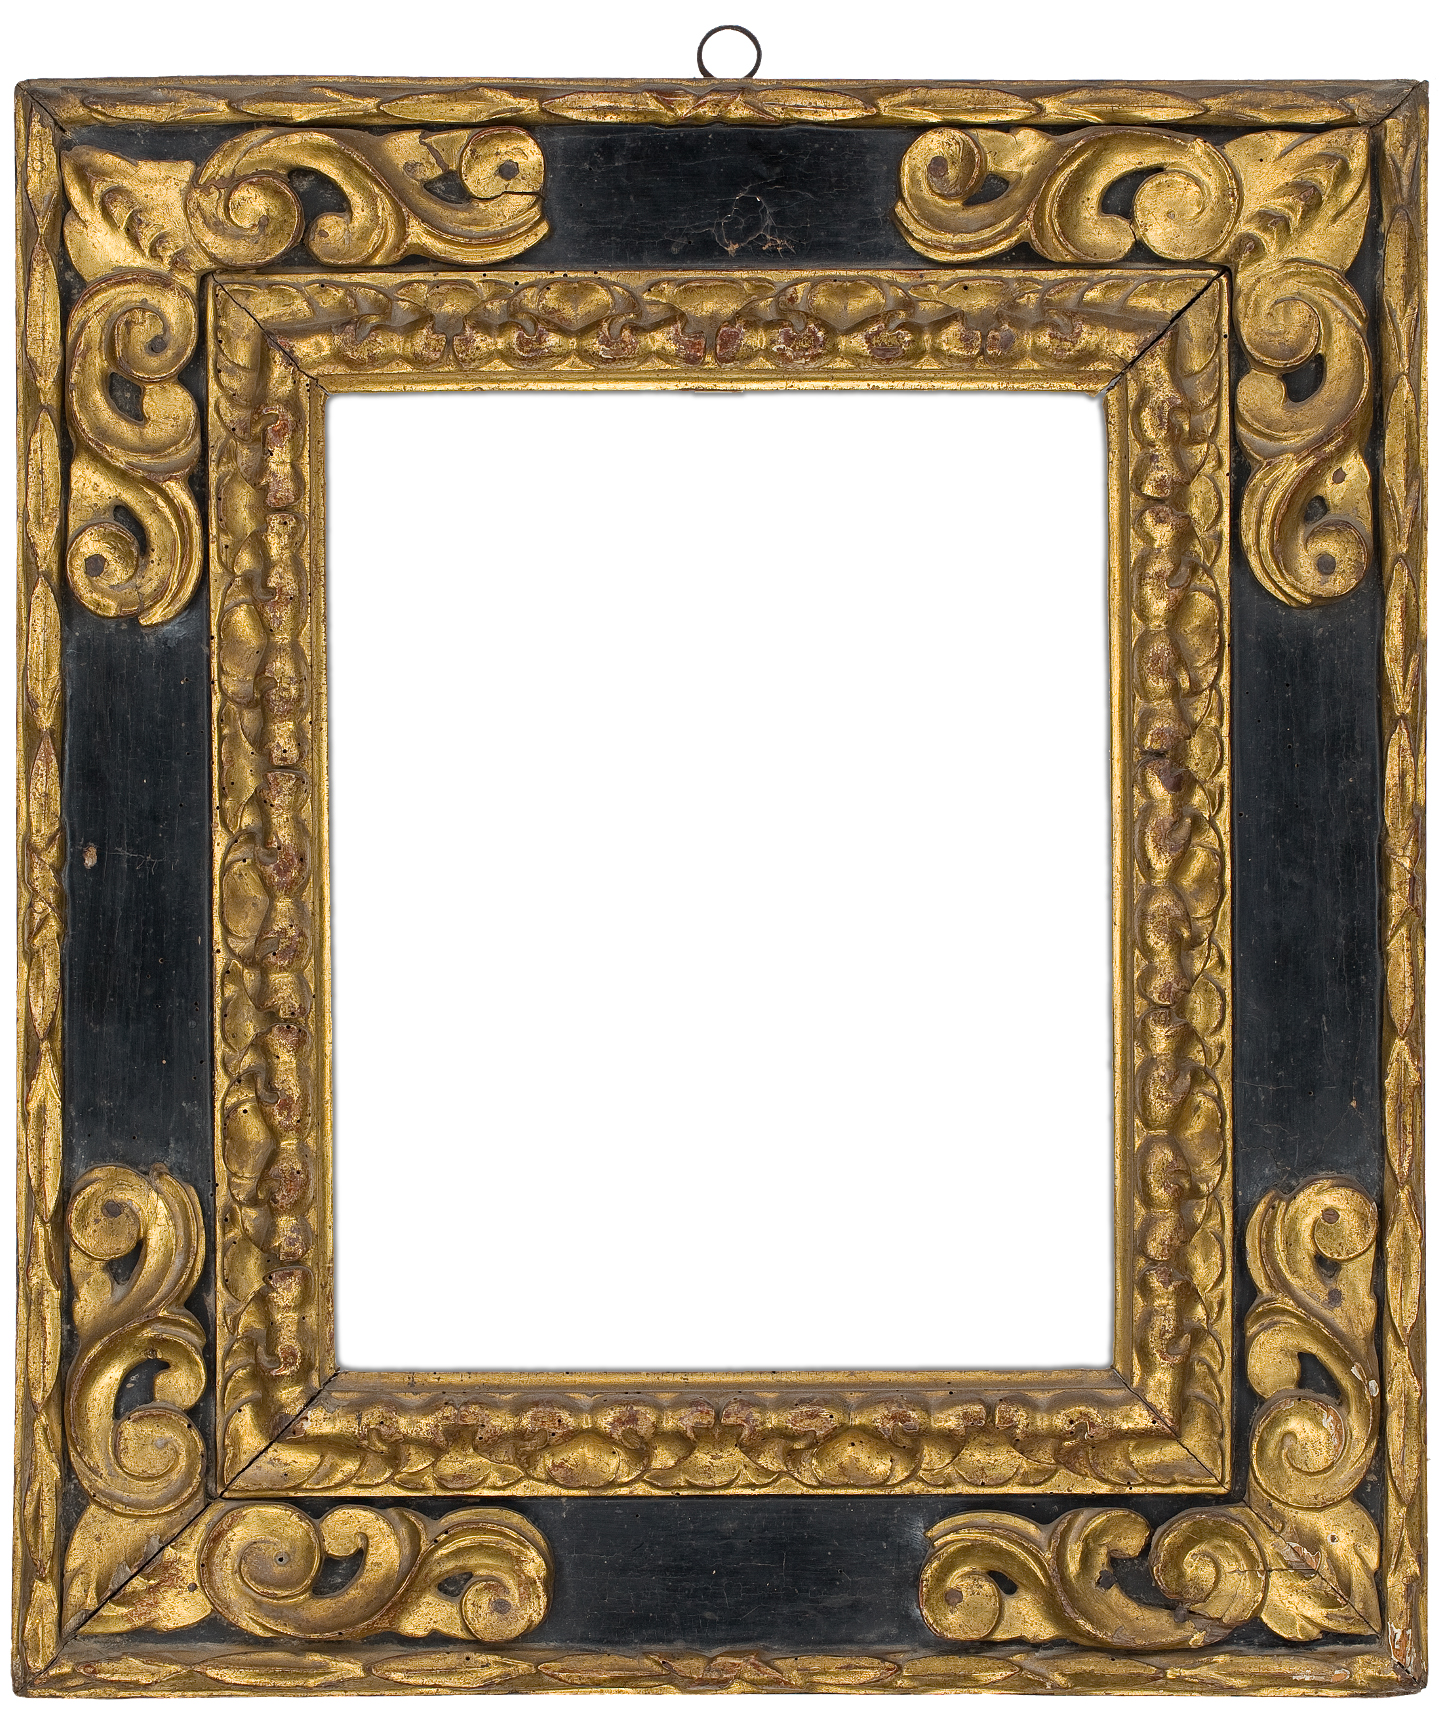 Frame of the Week – A Modern Masters Favorite